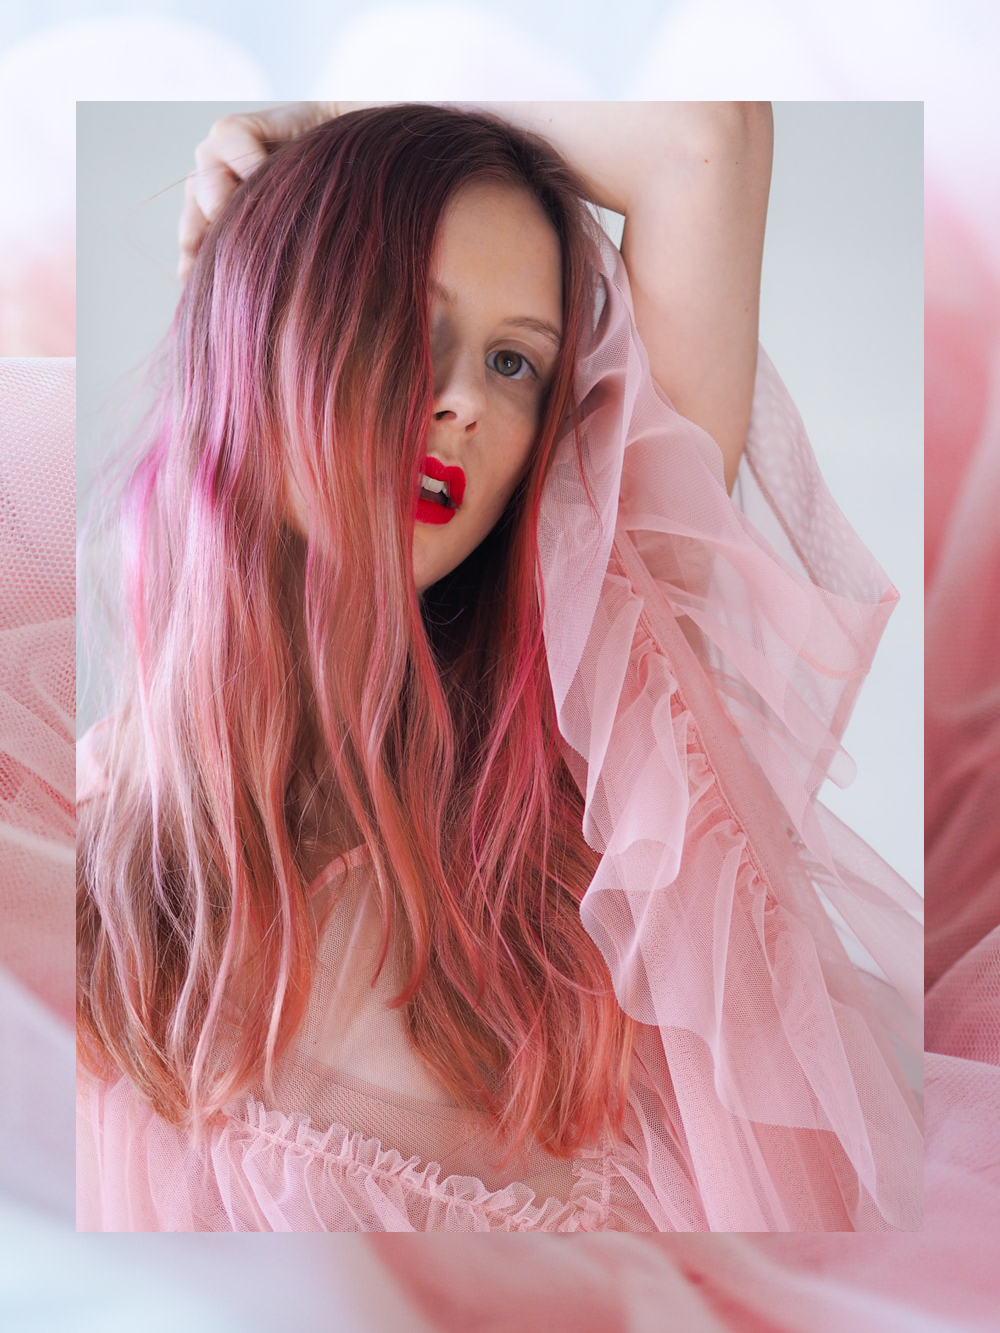 pink-hair-nemesis-babe-marie-my-blogger-maria-nila-pink-pop-13collage5.png